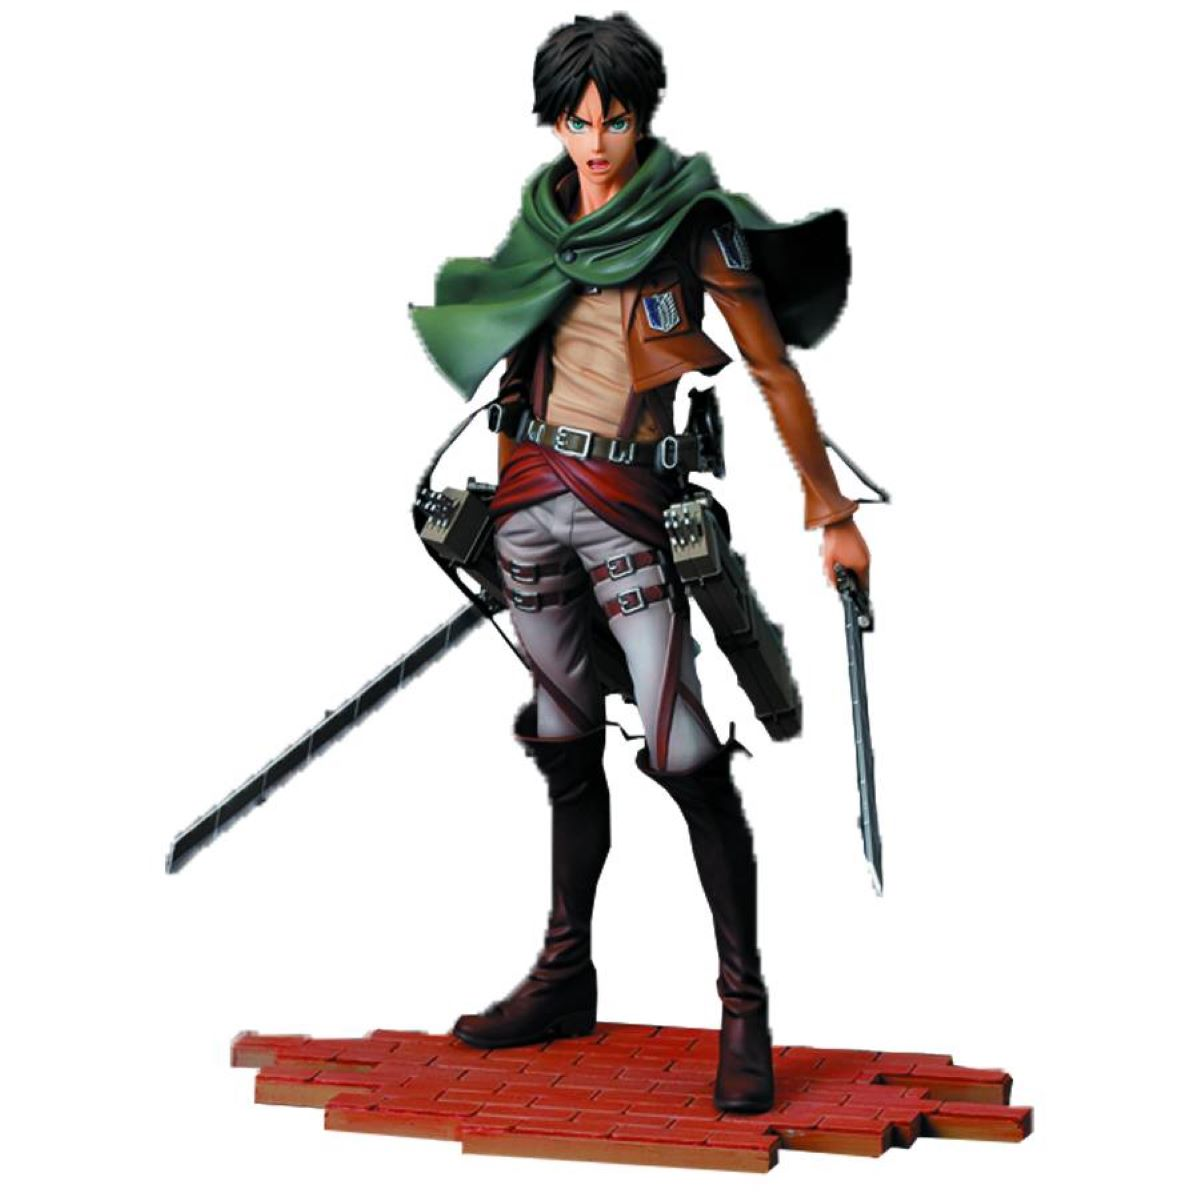 attack on titan eren yeager figure